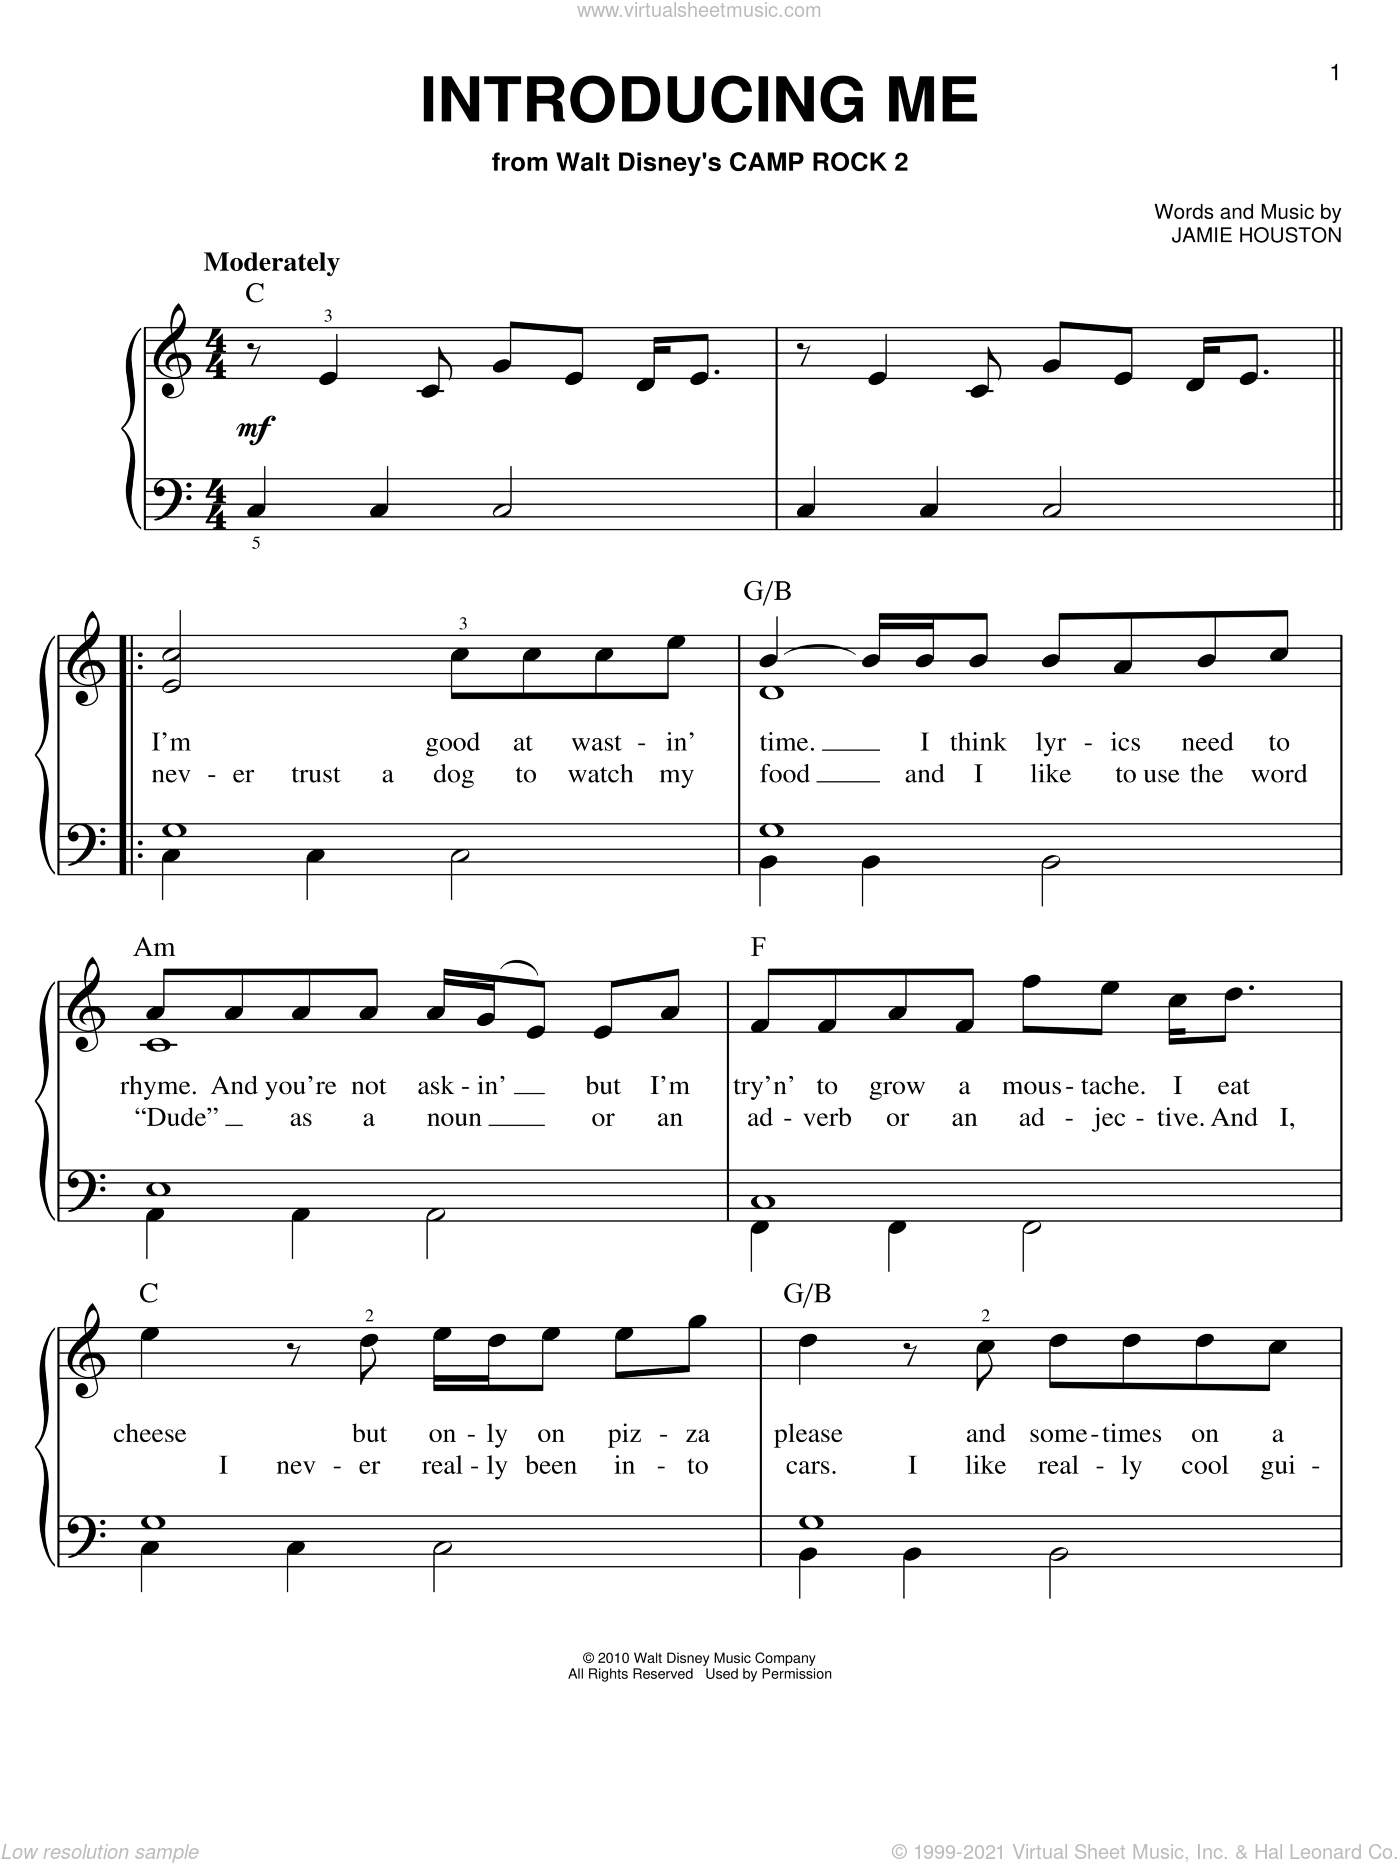 Introducing Me sheet music for piano solo by Nick Jonas and Jamie Houston, easy piano. Score Image Preview.